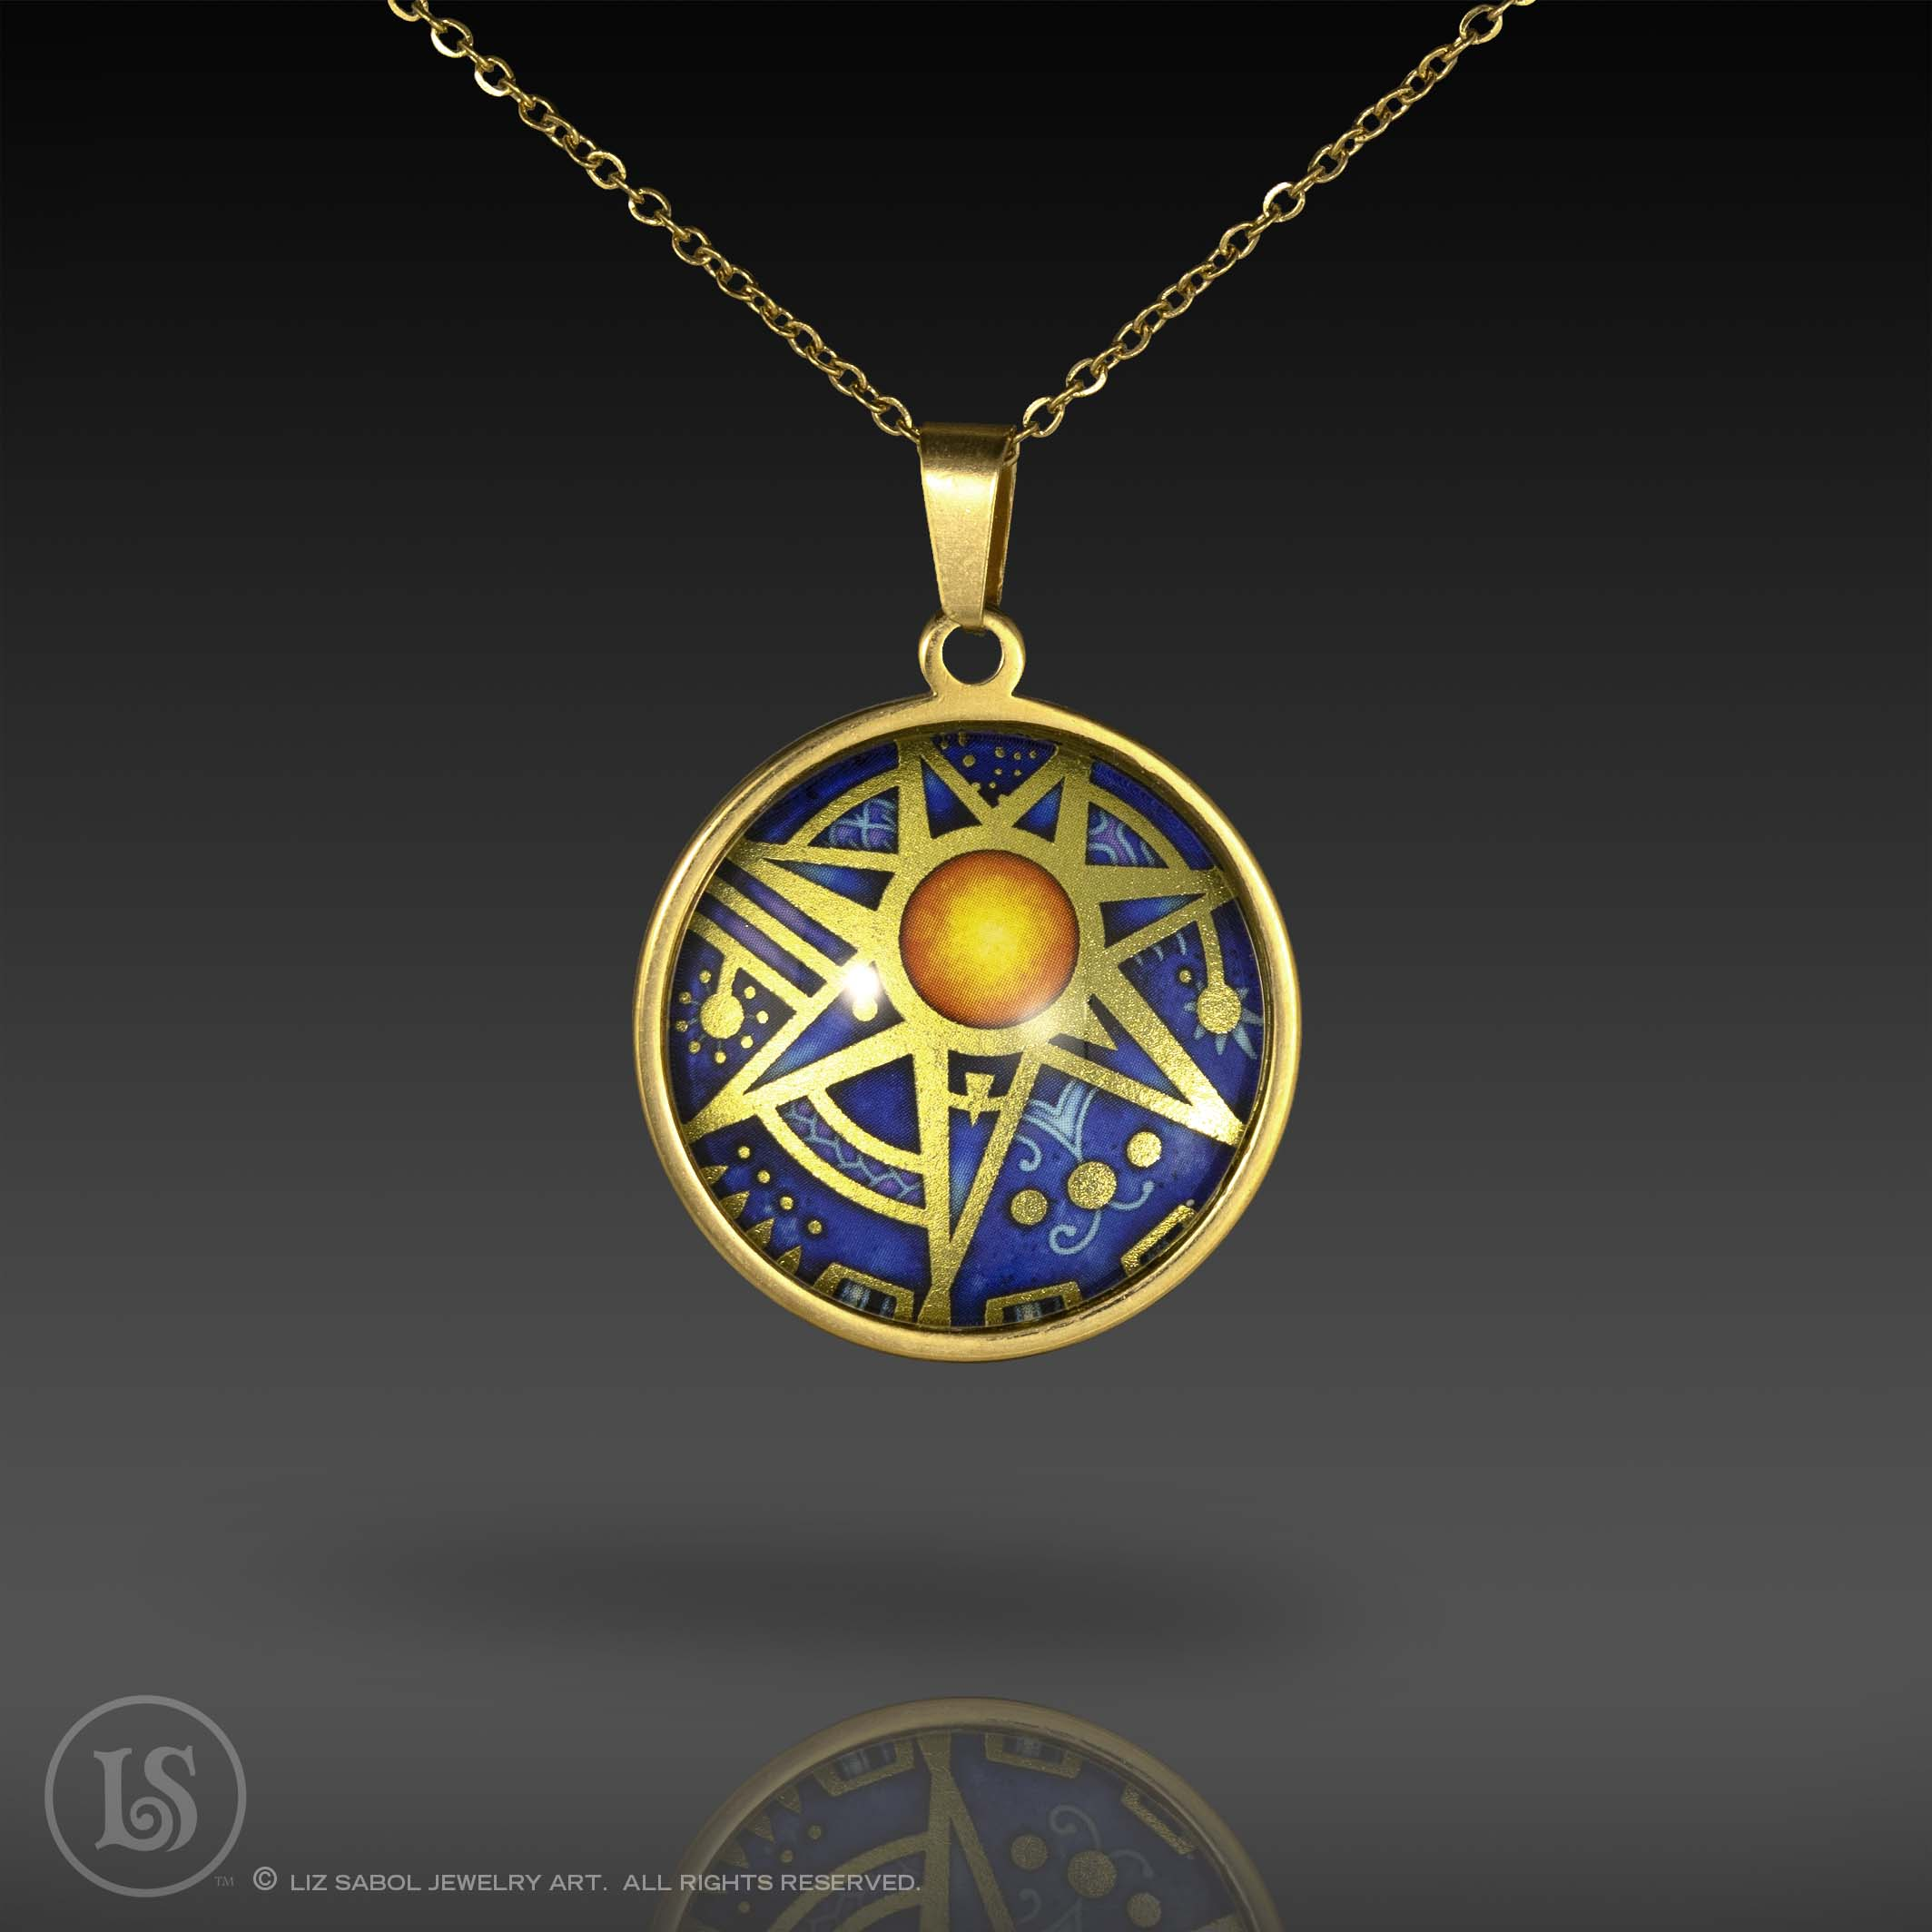 Star Fire Midnight Pendant, Glass, Gold-plated Stainless Steel